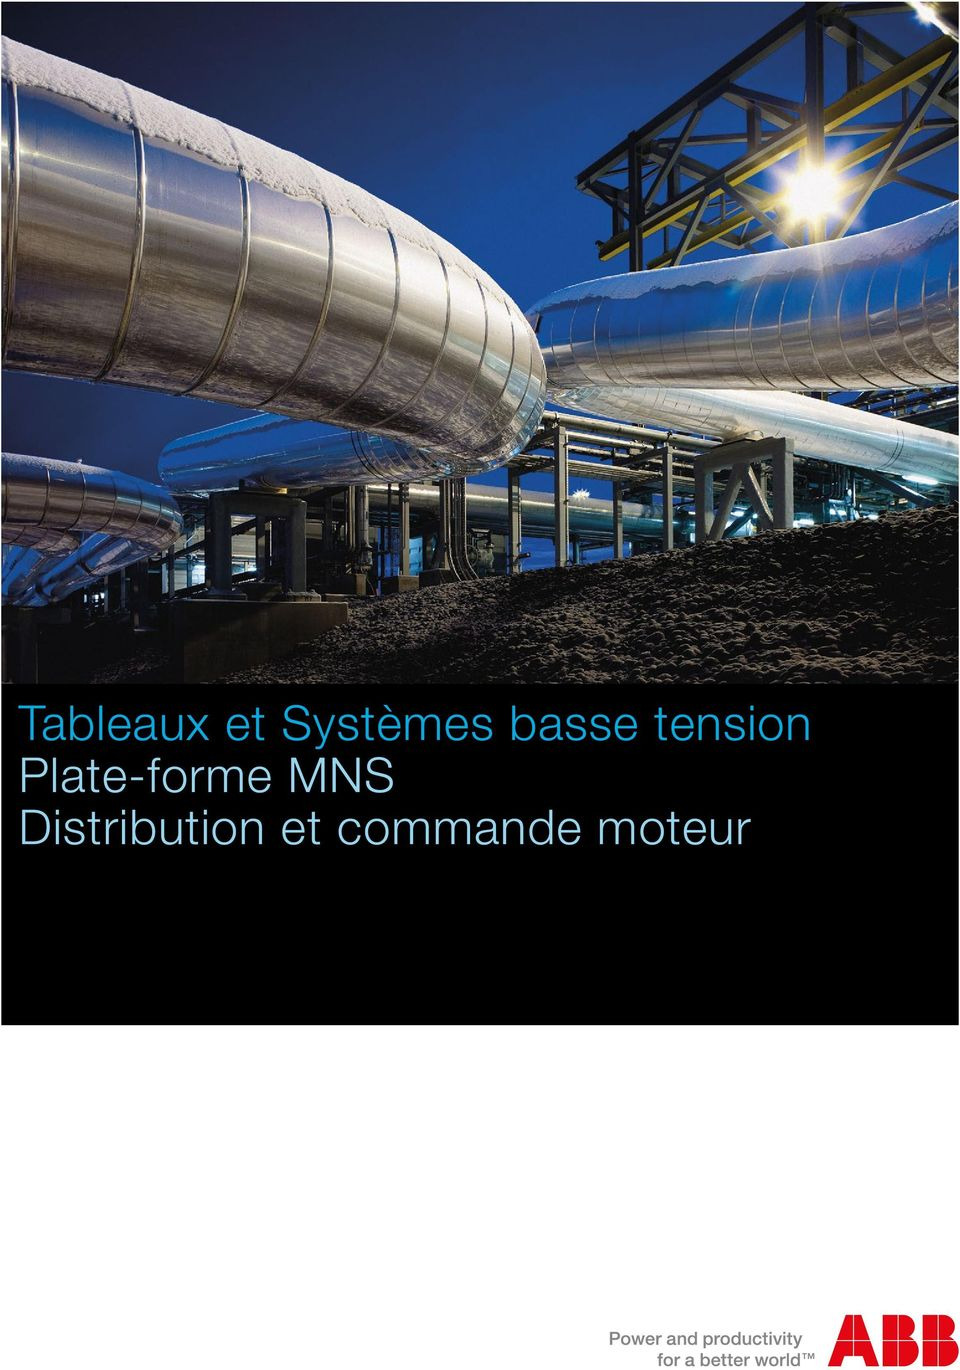 Plate-forme MNS